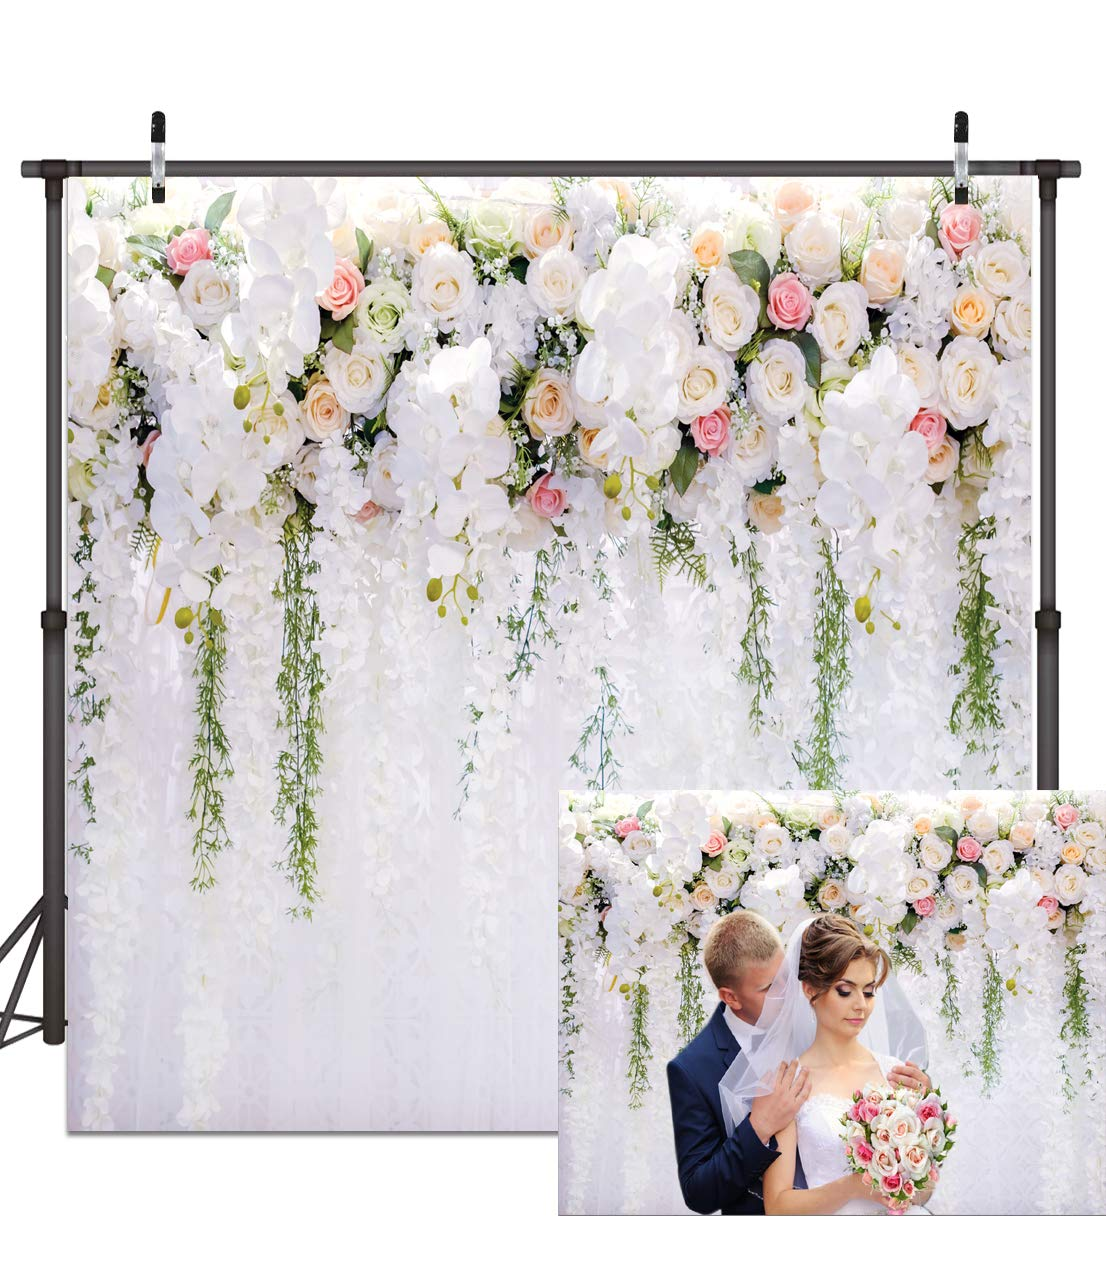 Dudaacvt 8X8FT White Flower Backdrop Curtain Floral 3D Flower Wedding Birthday Party Background Photo Backdrop Carnival Party Backdrop D0730808